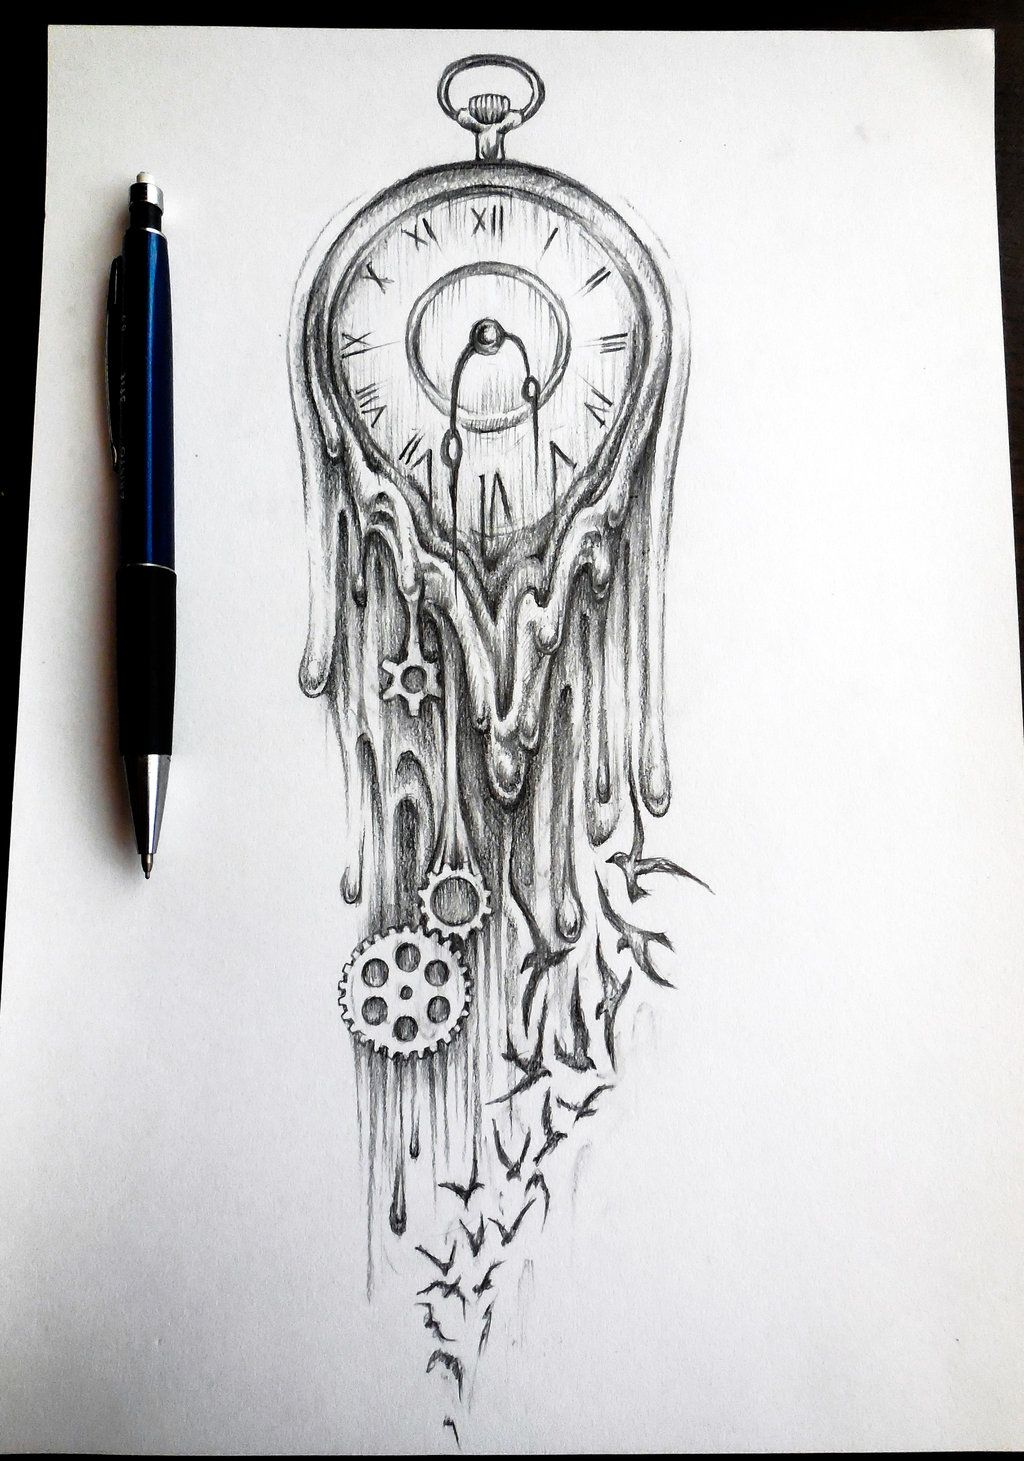 Hourglass drawing  Time flies by bobby79.deviantart.com on @deviantART | Artistique ...